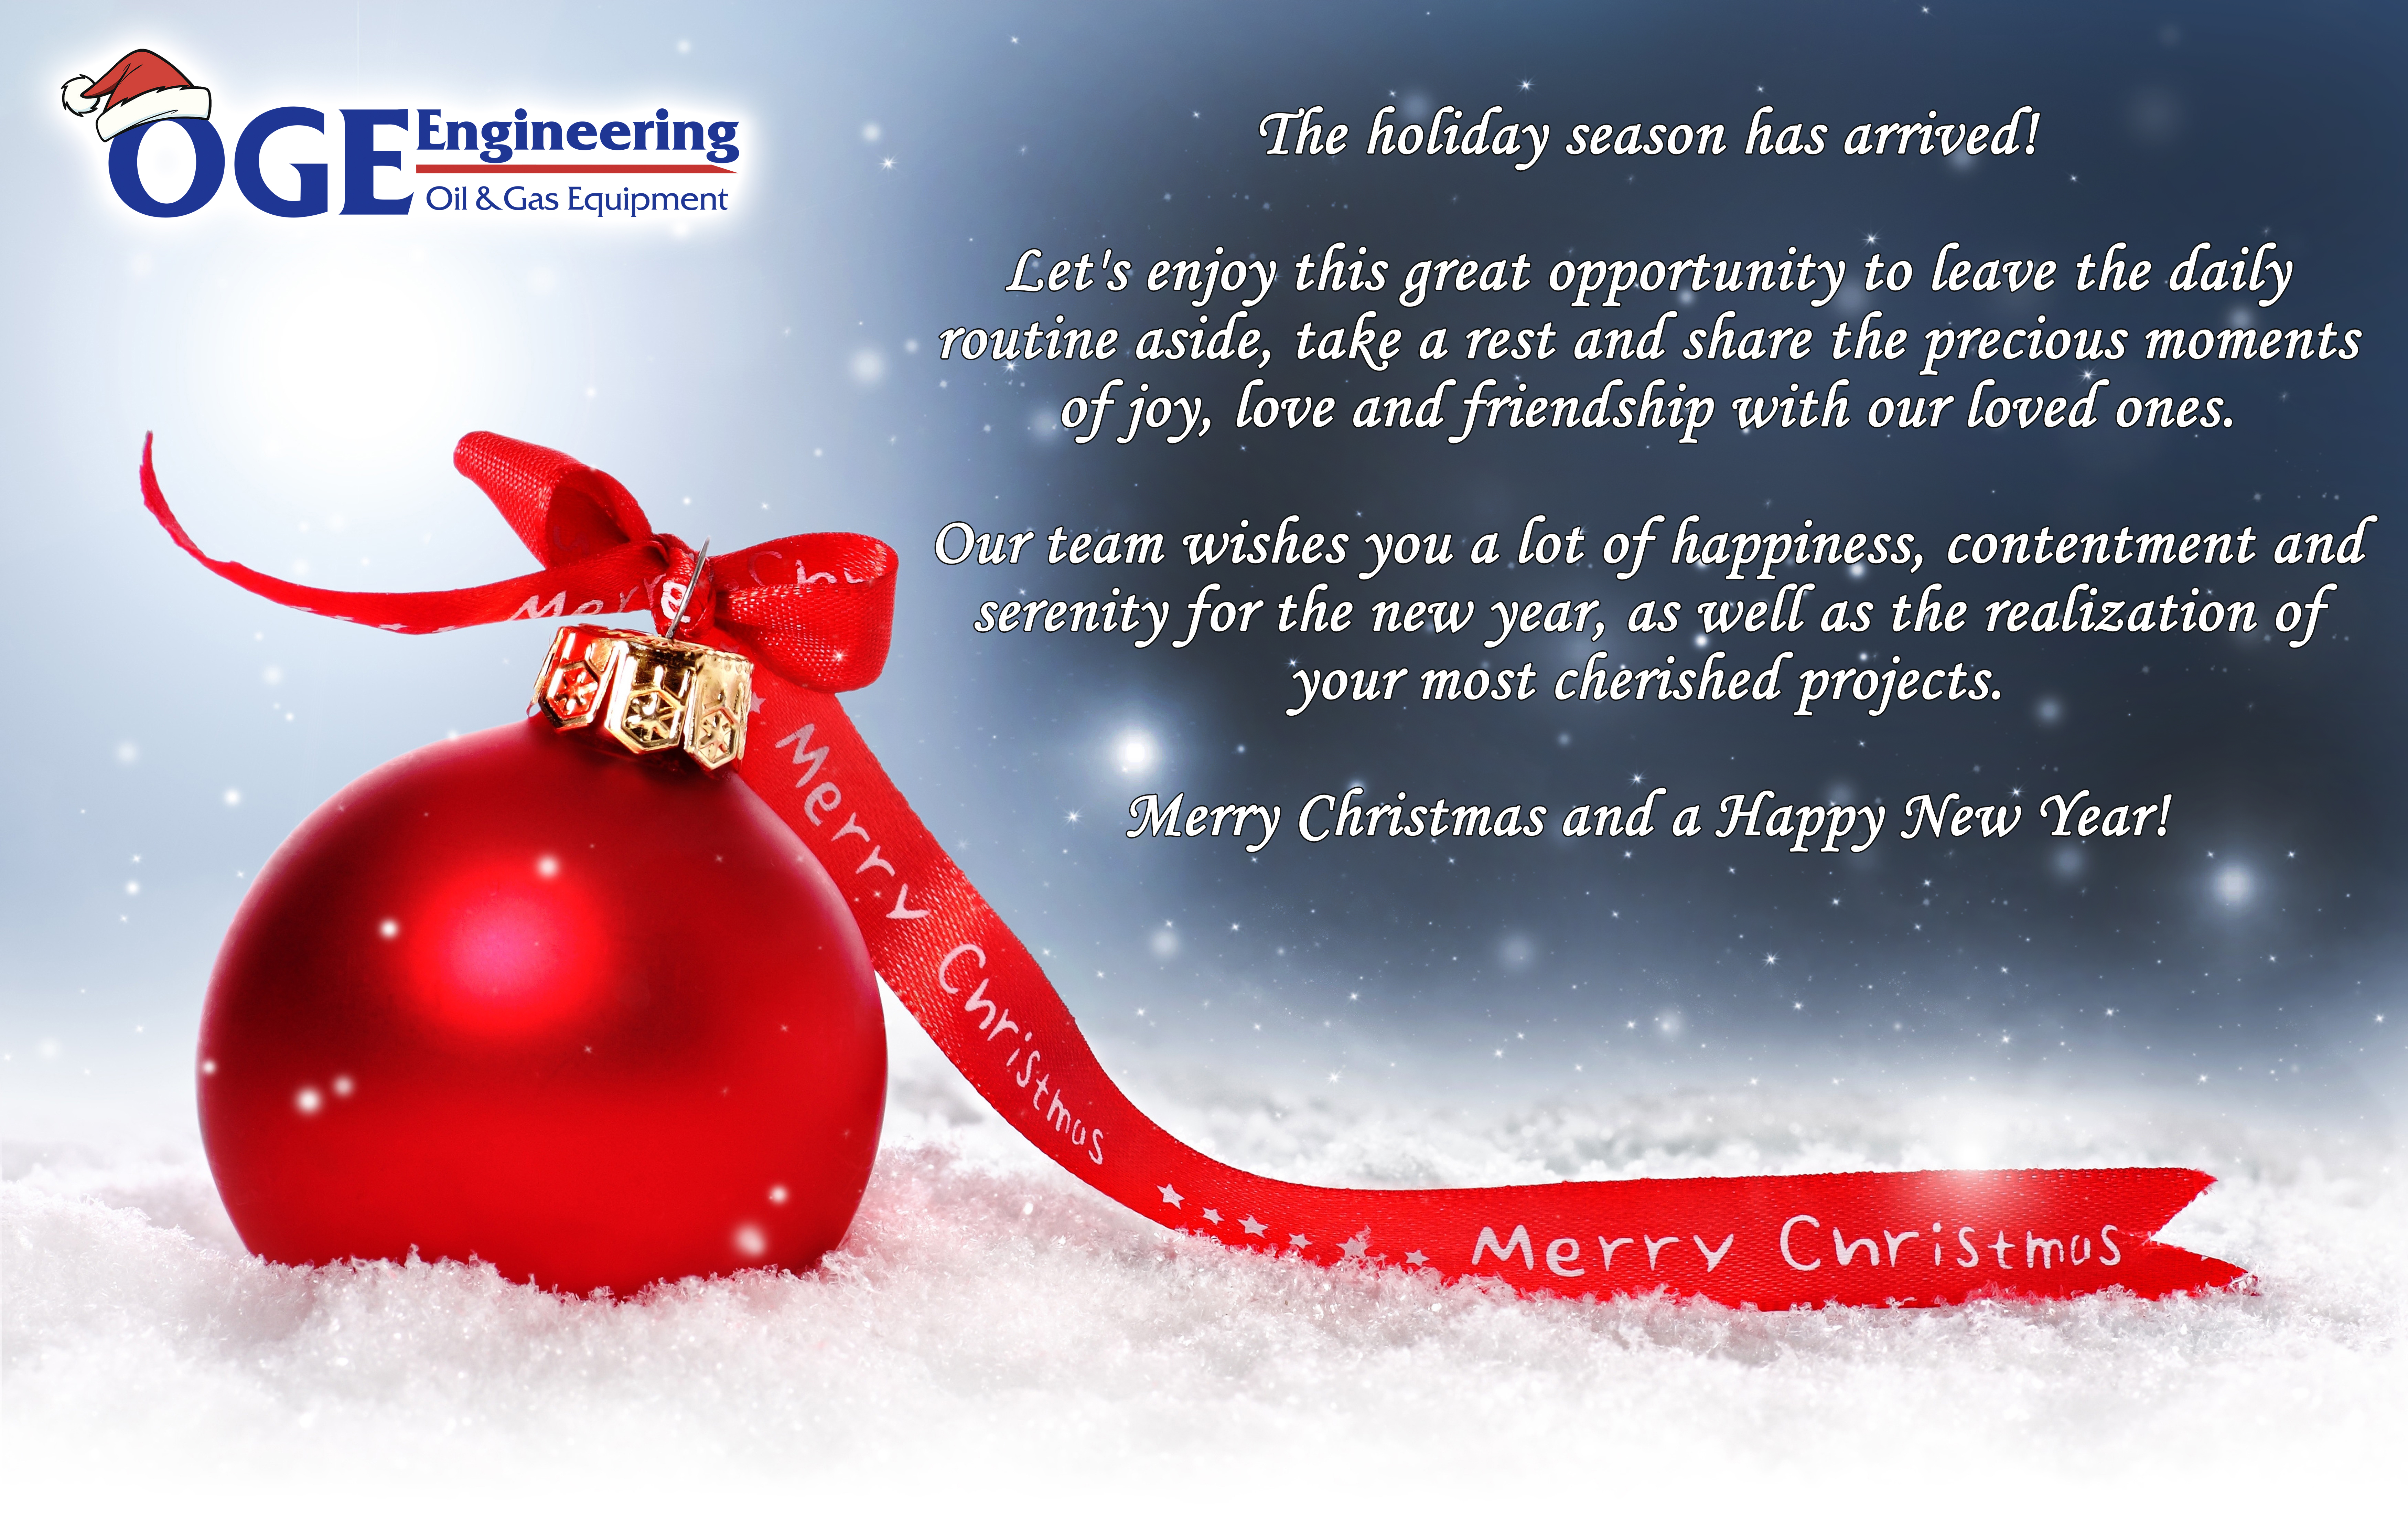 Merry christmas and a happy new year ogeeng merry christmas and a happy new year kristyandbryce Image collections